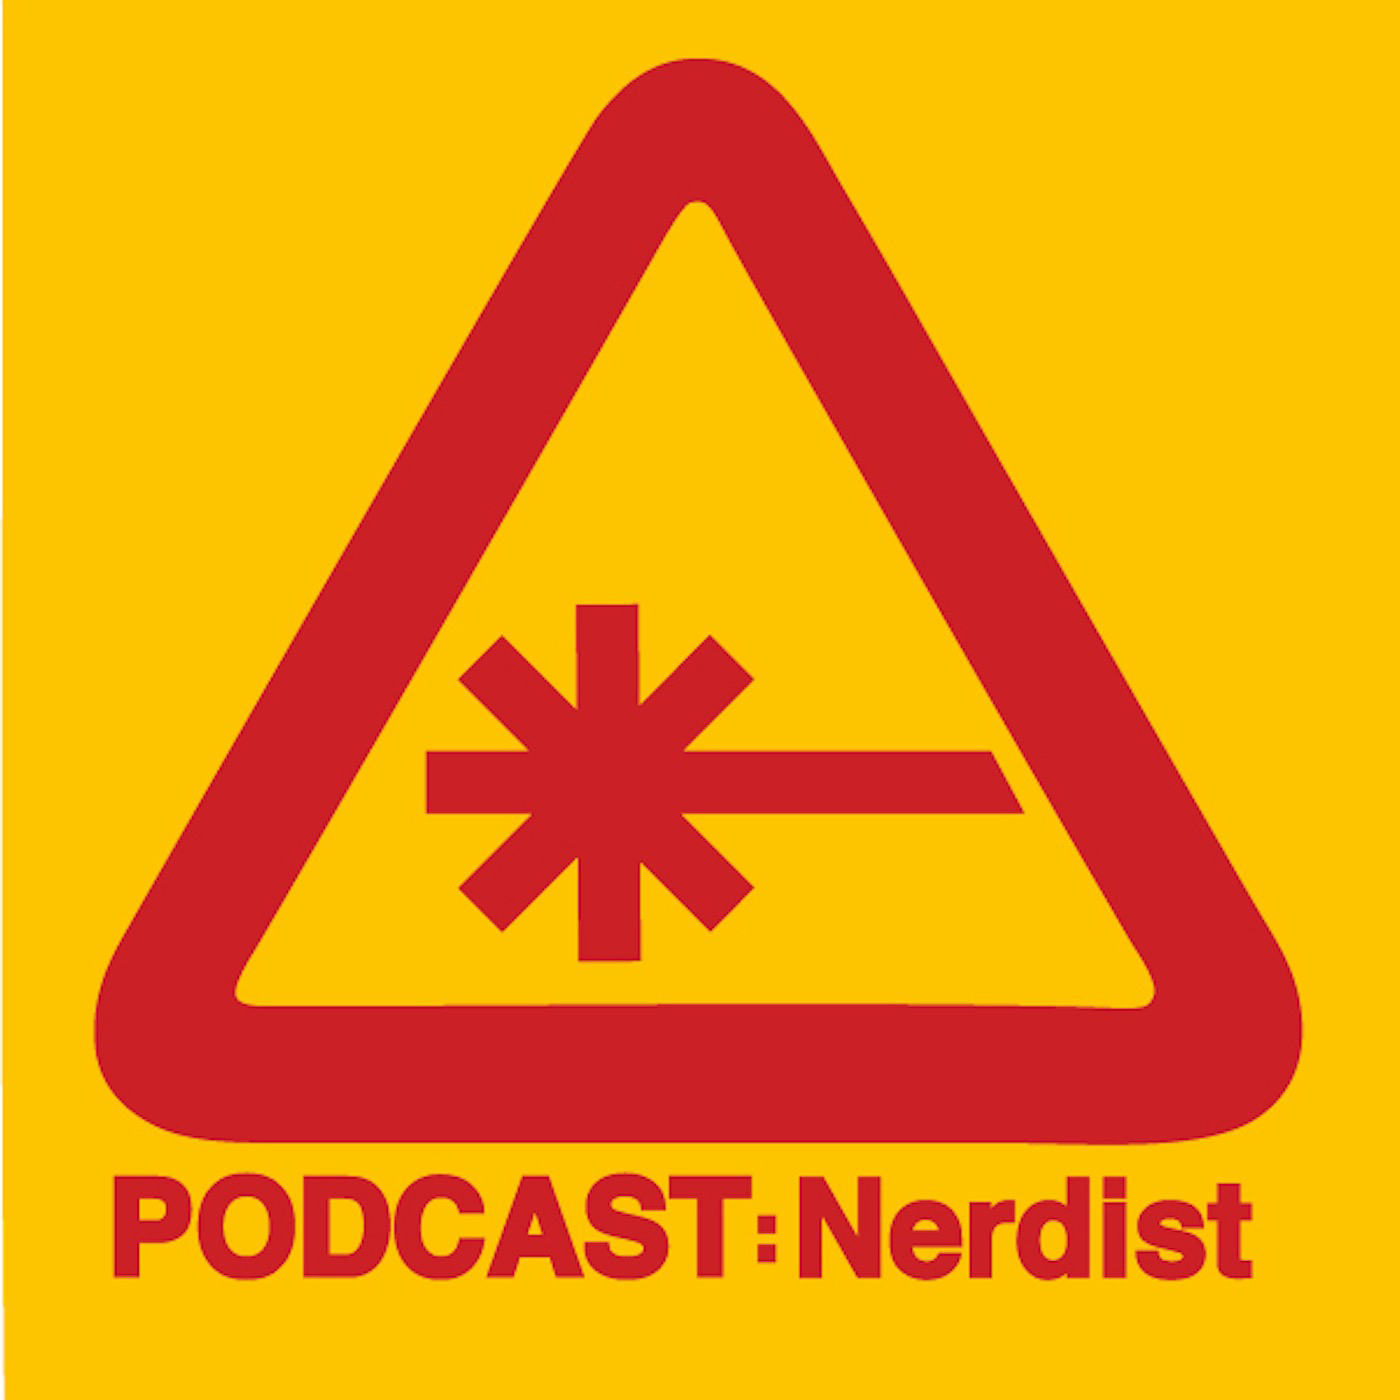 The Bruce Lee Podcast is now at Nerdist. -